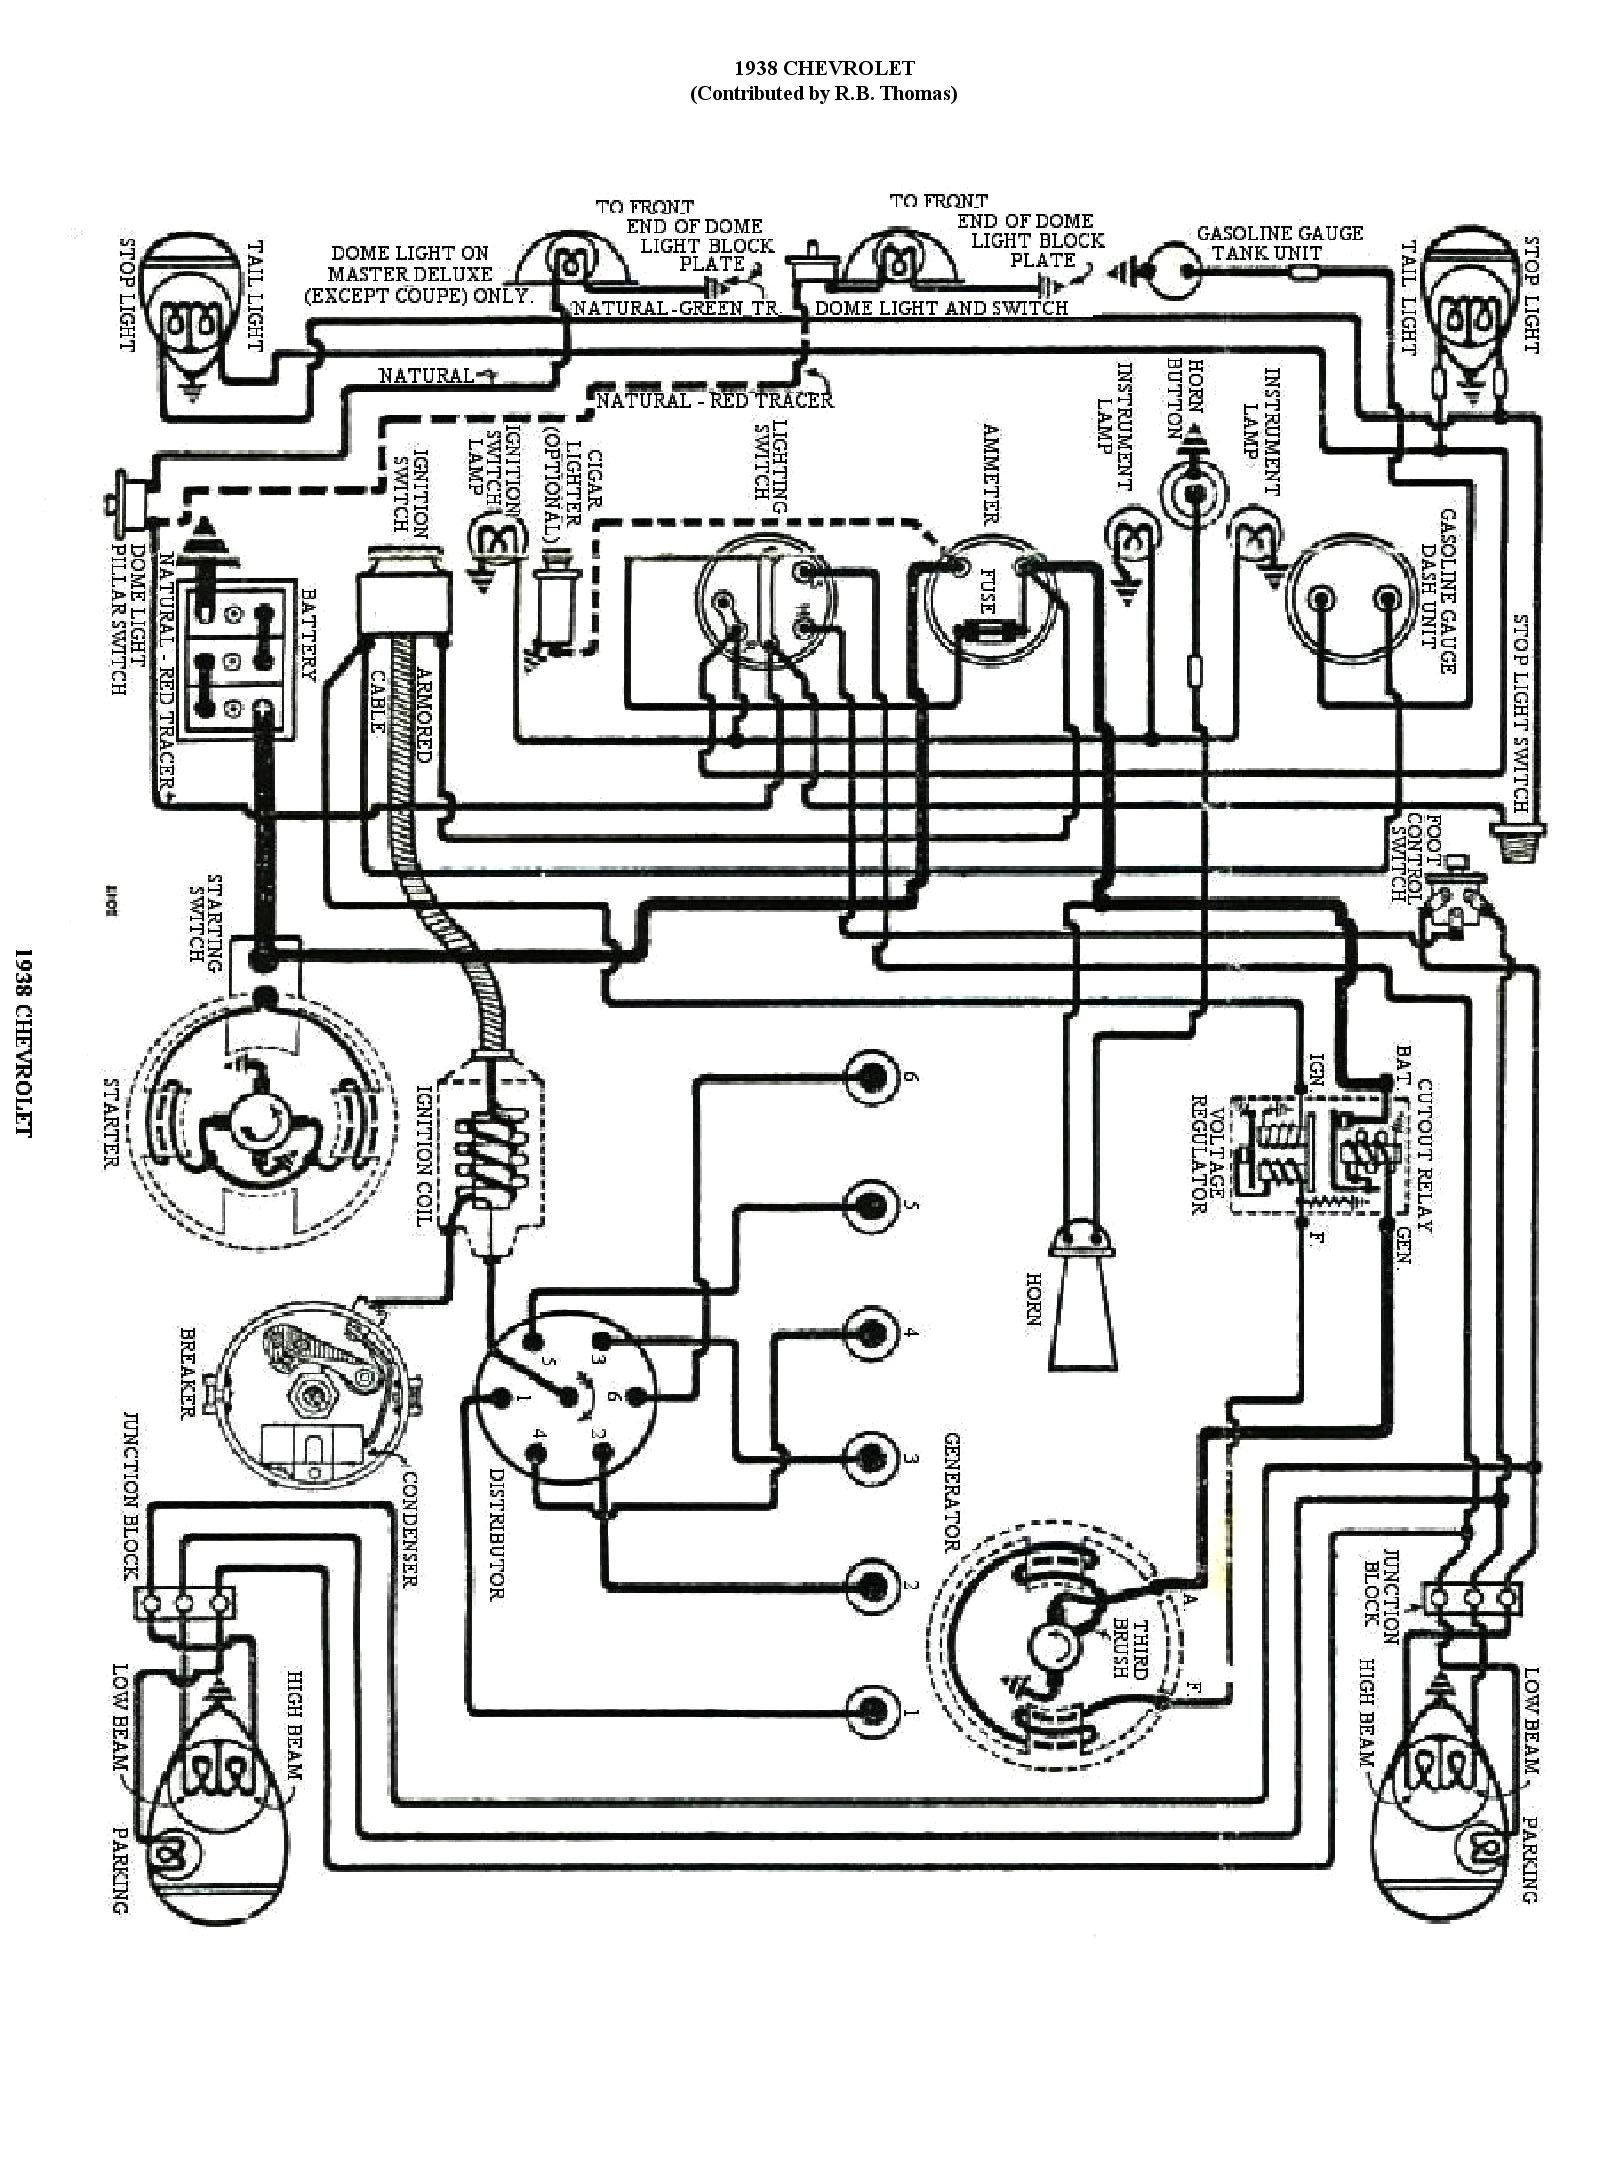 38wiring chevy wiring diagrams 1937 ford wiring diagram at crackthecode.co